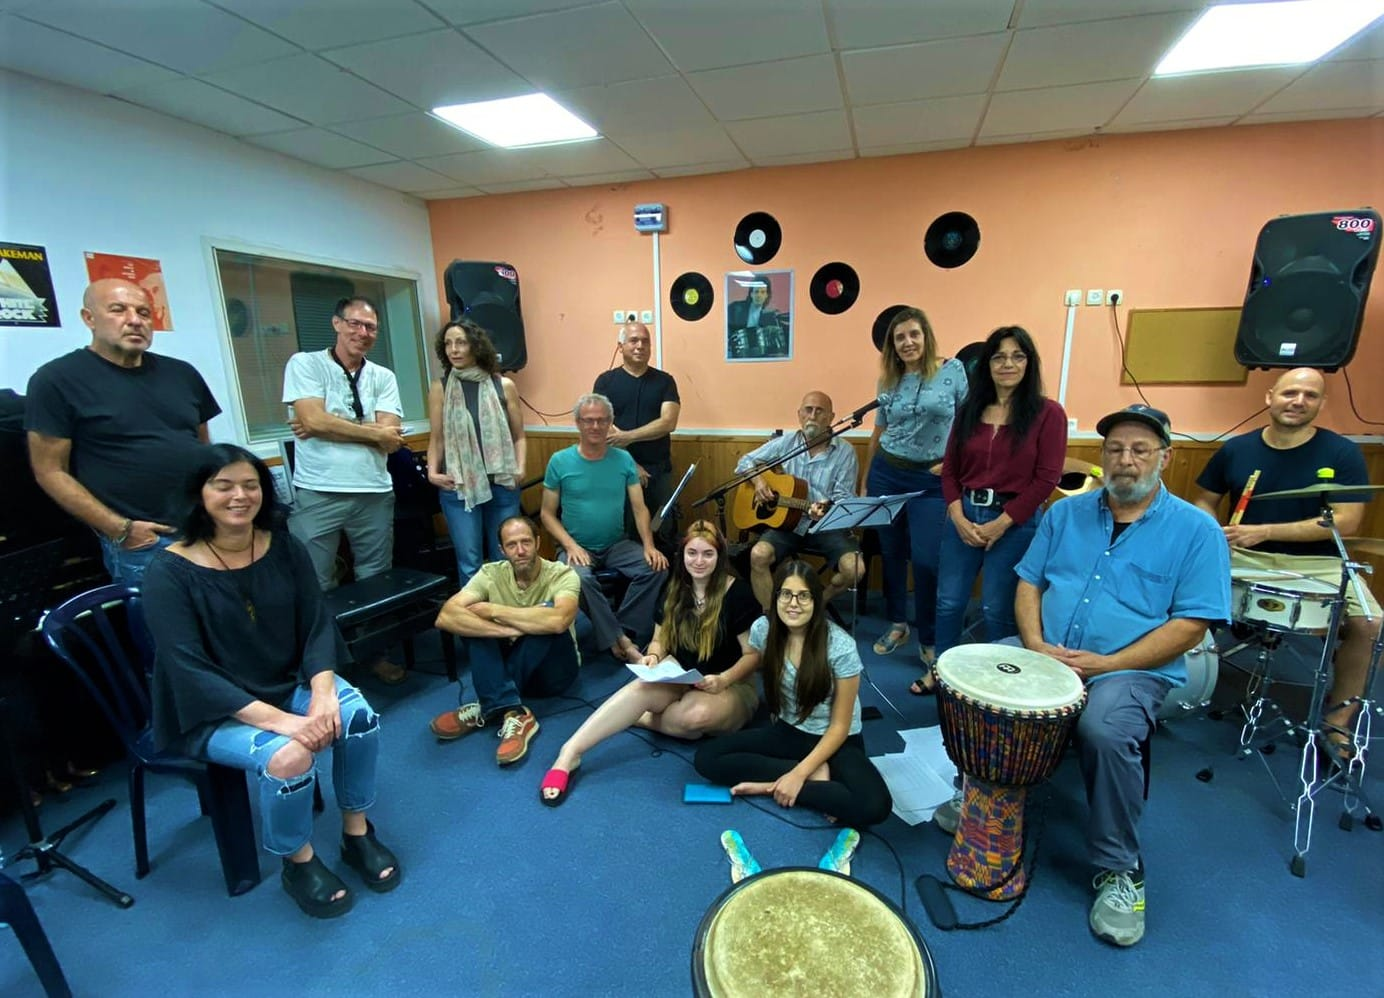 Yachad workshop combining music with Jewish values